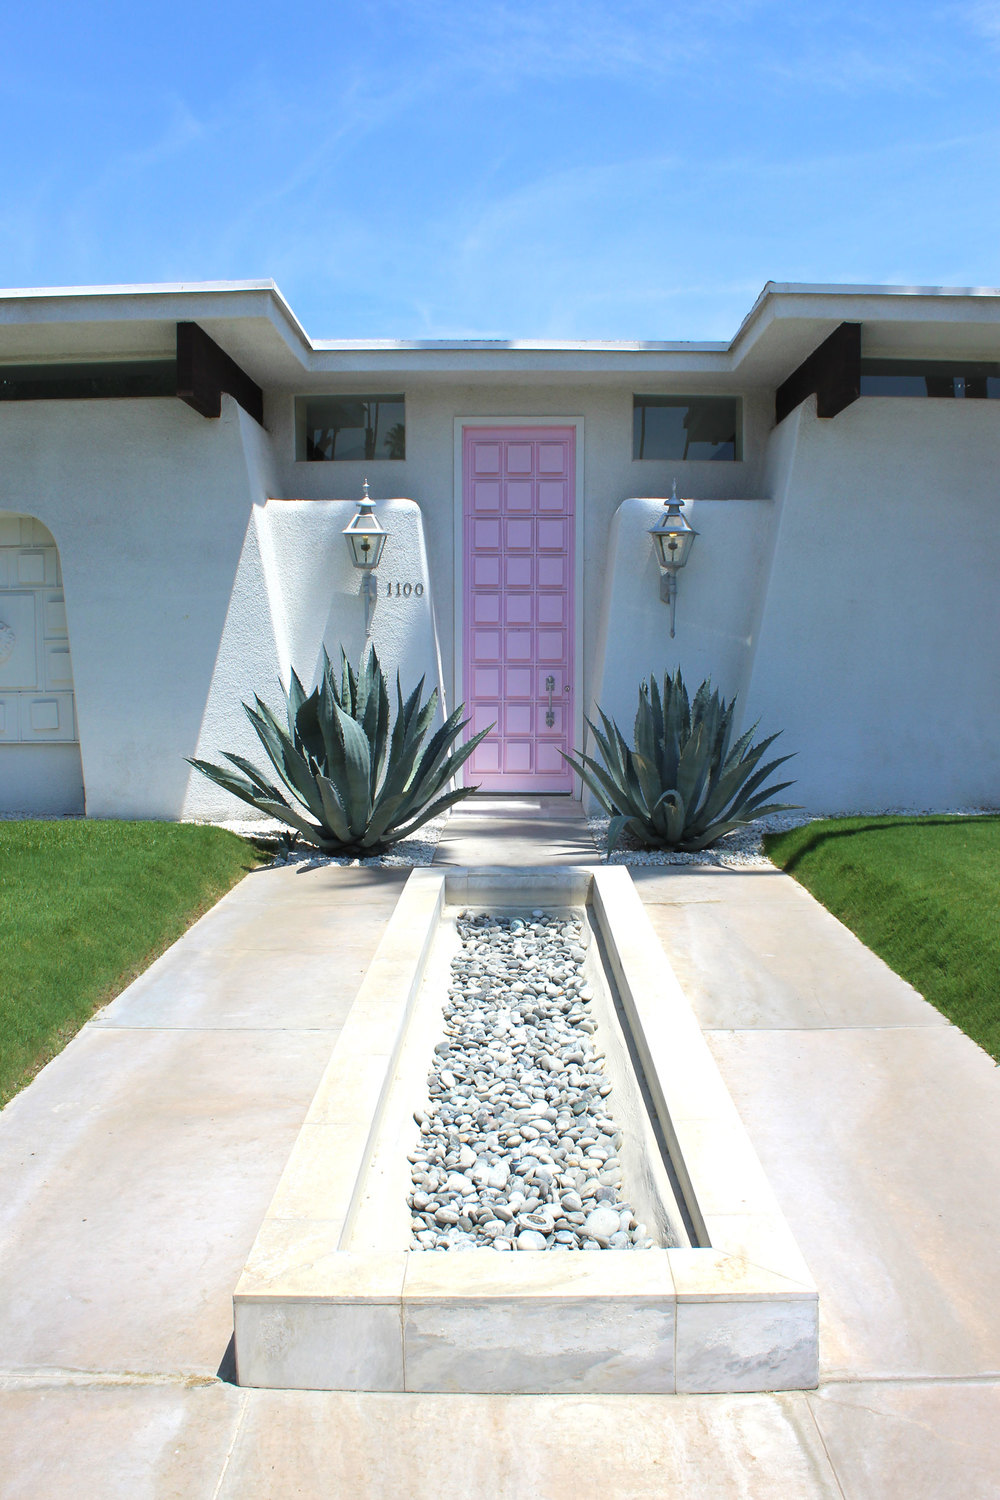 Pink door house in Palm Springs, California | Sundays and Somedays